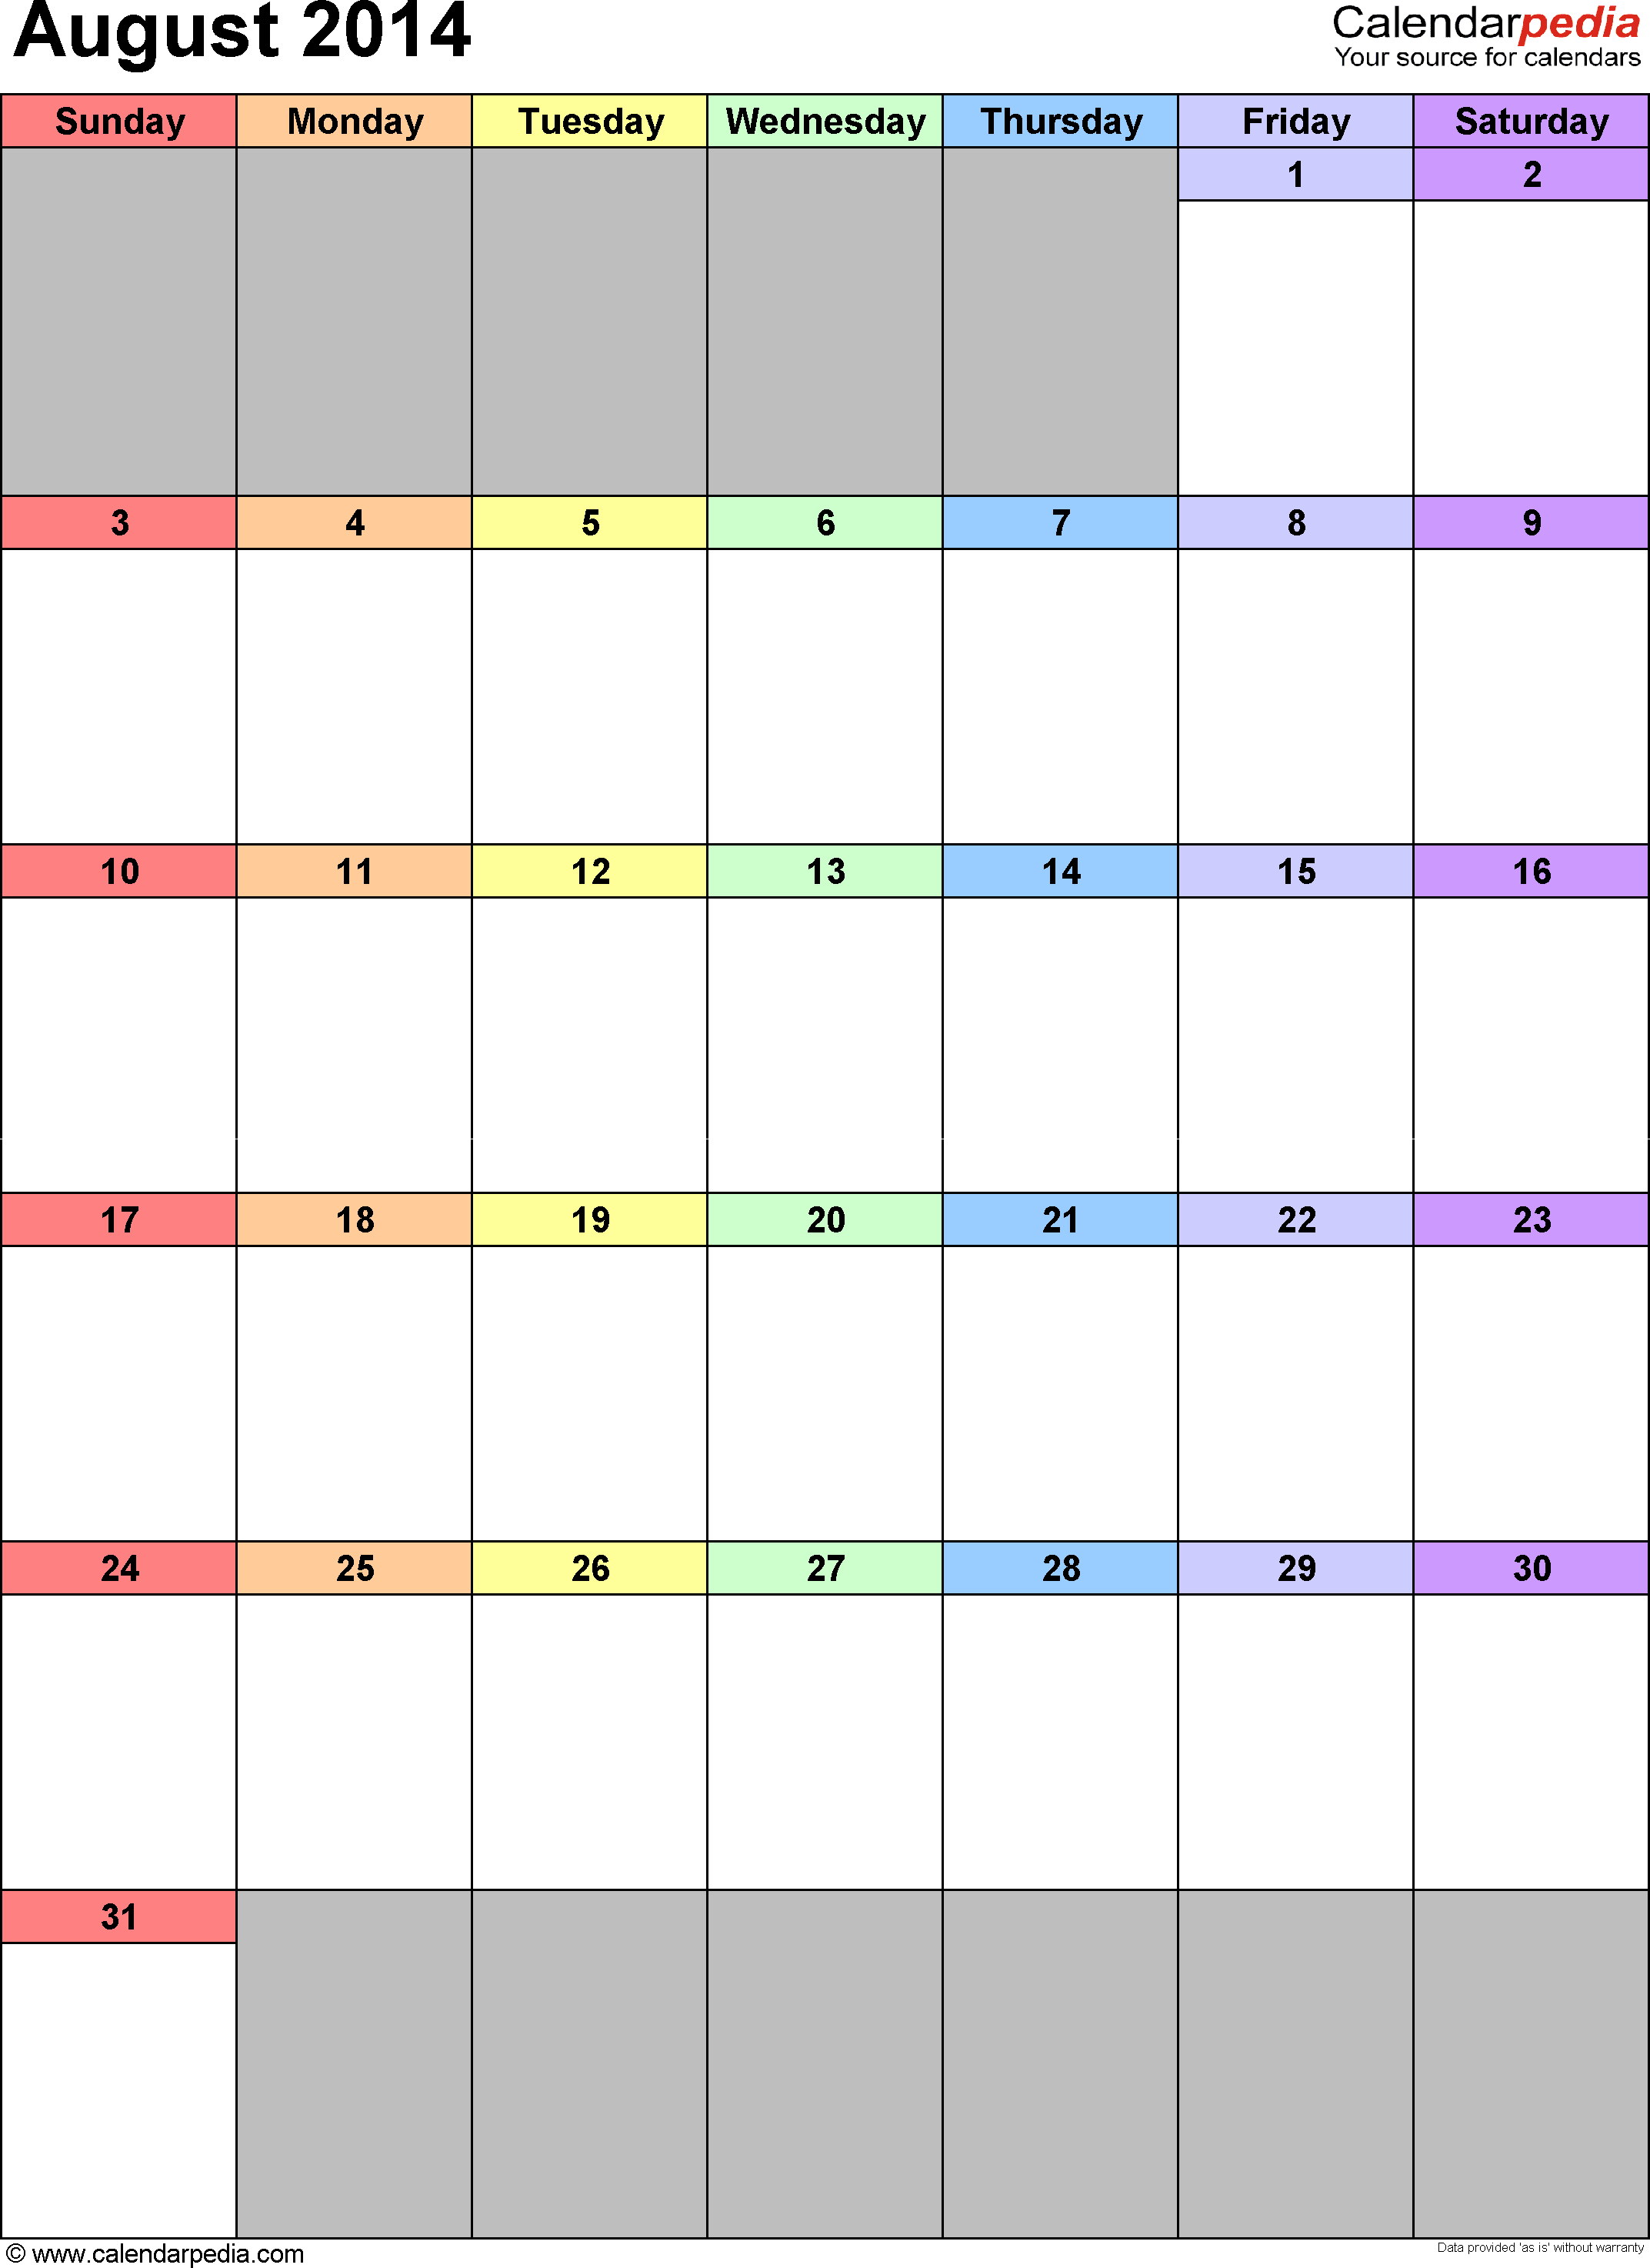 August 2014 calendar as printable Word, Excel & PDF templates